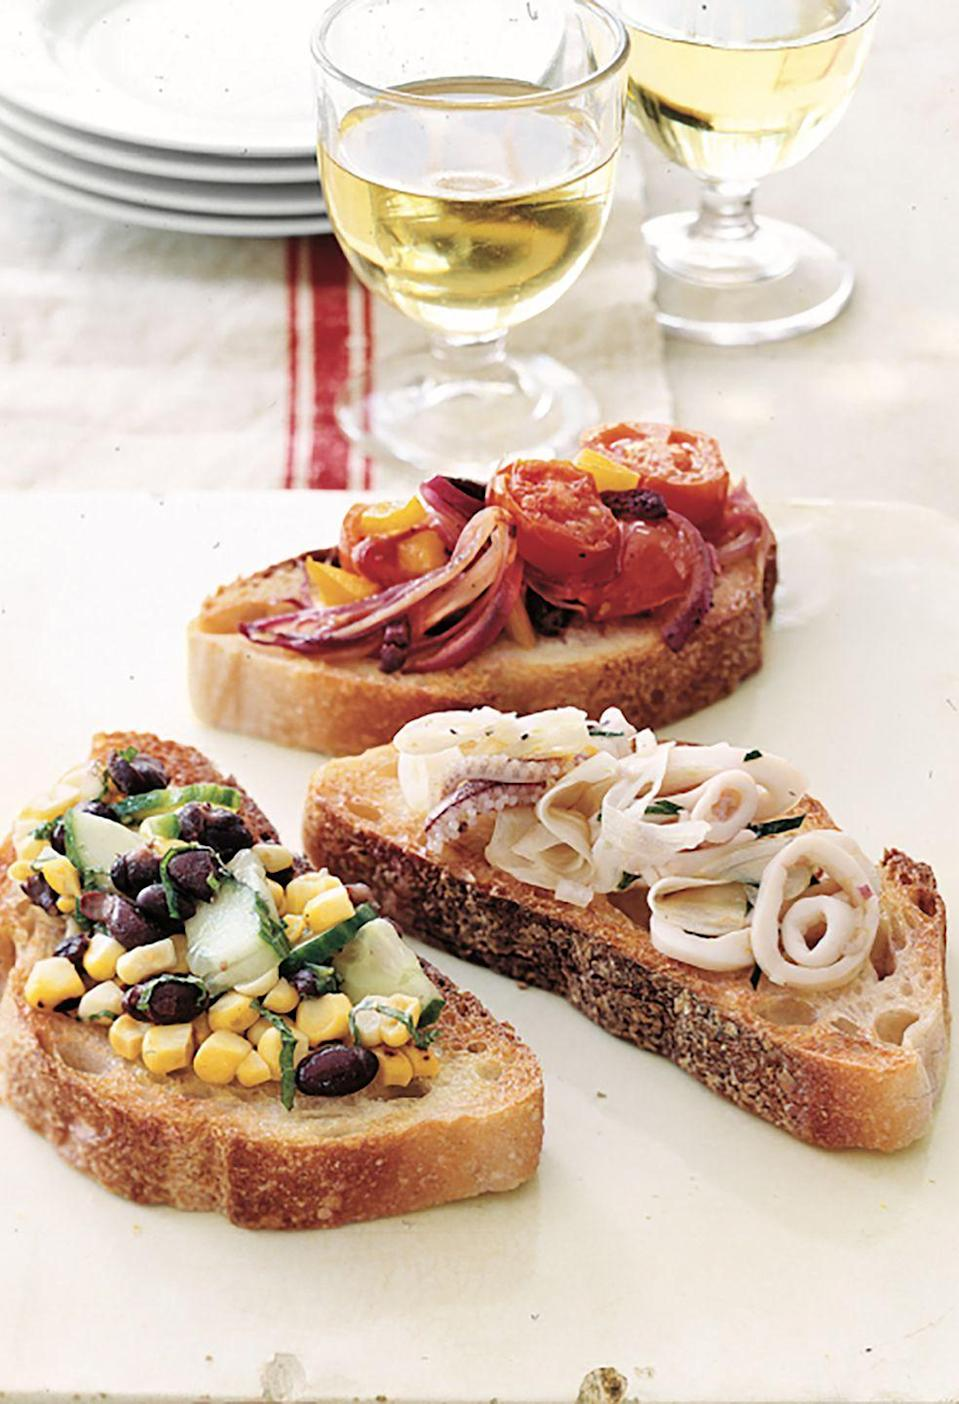 """<p>A single baguette, sliced and used as a foundation, yields a host of easy-to-assemble appetizers. Prepare toppings the day before and add them just before serving. Offer guests small plates and forks to scoop up the extras.</p><p><strong><a href=""""https://www.countryliving.com/food-drinks/recipes/a1024/bruschetta-3140/"""" rel=""""nofollow noopener"""" target=""""_blank"""" data-ylk=""""slk:Get the recipe"""" class=""""link rapid-noclick-resp"""">Get the recipe</a>.</strong></p>"""